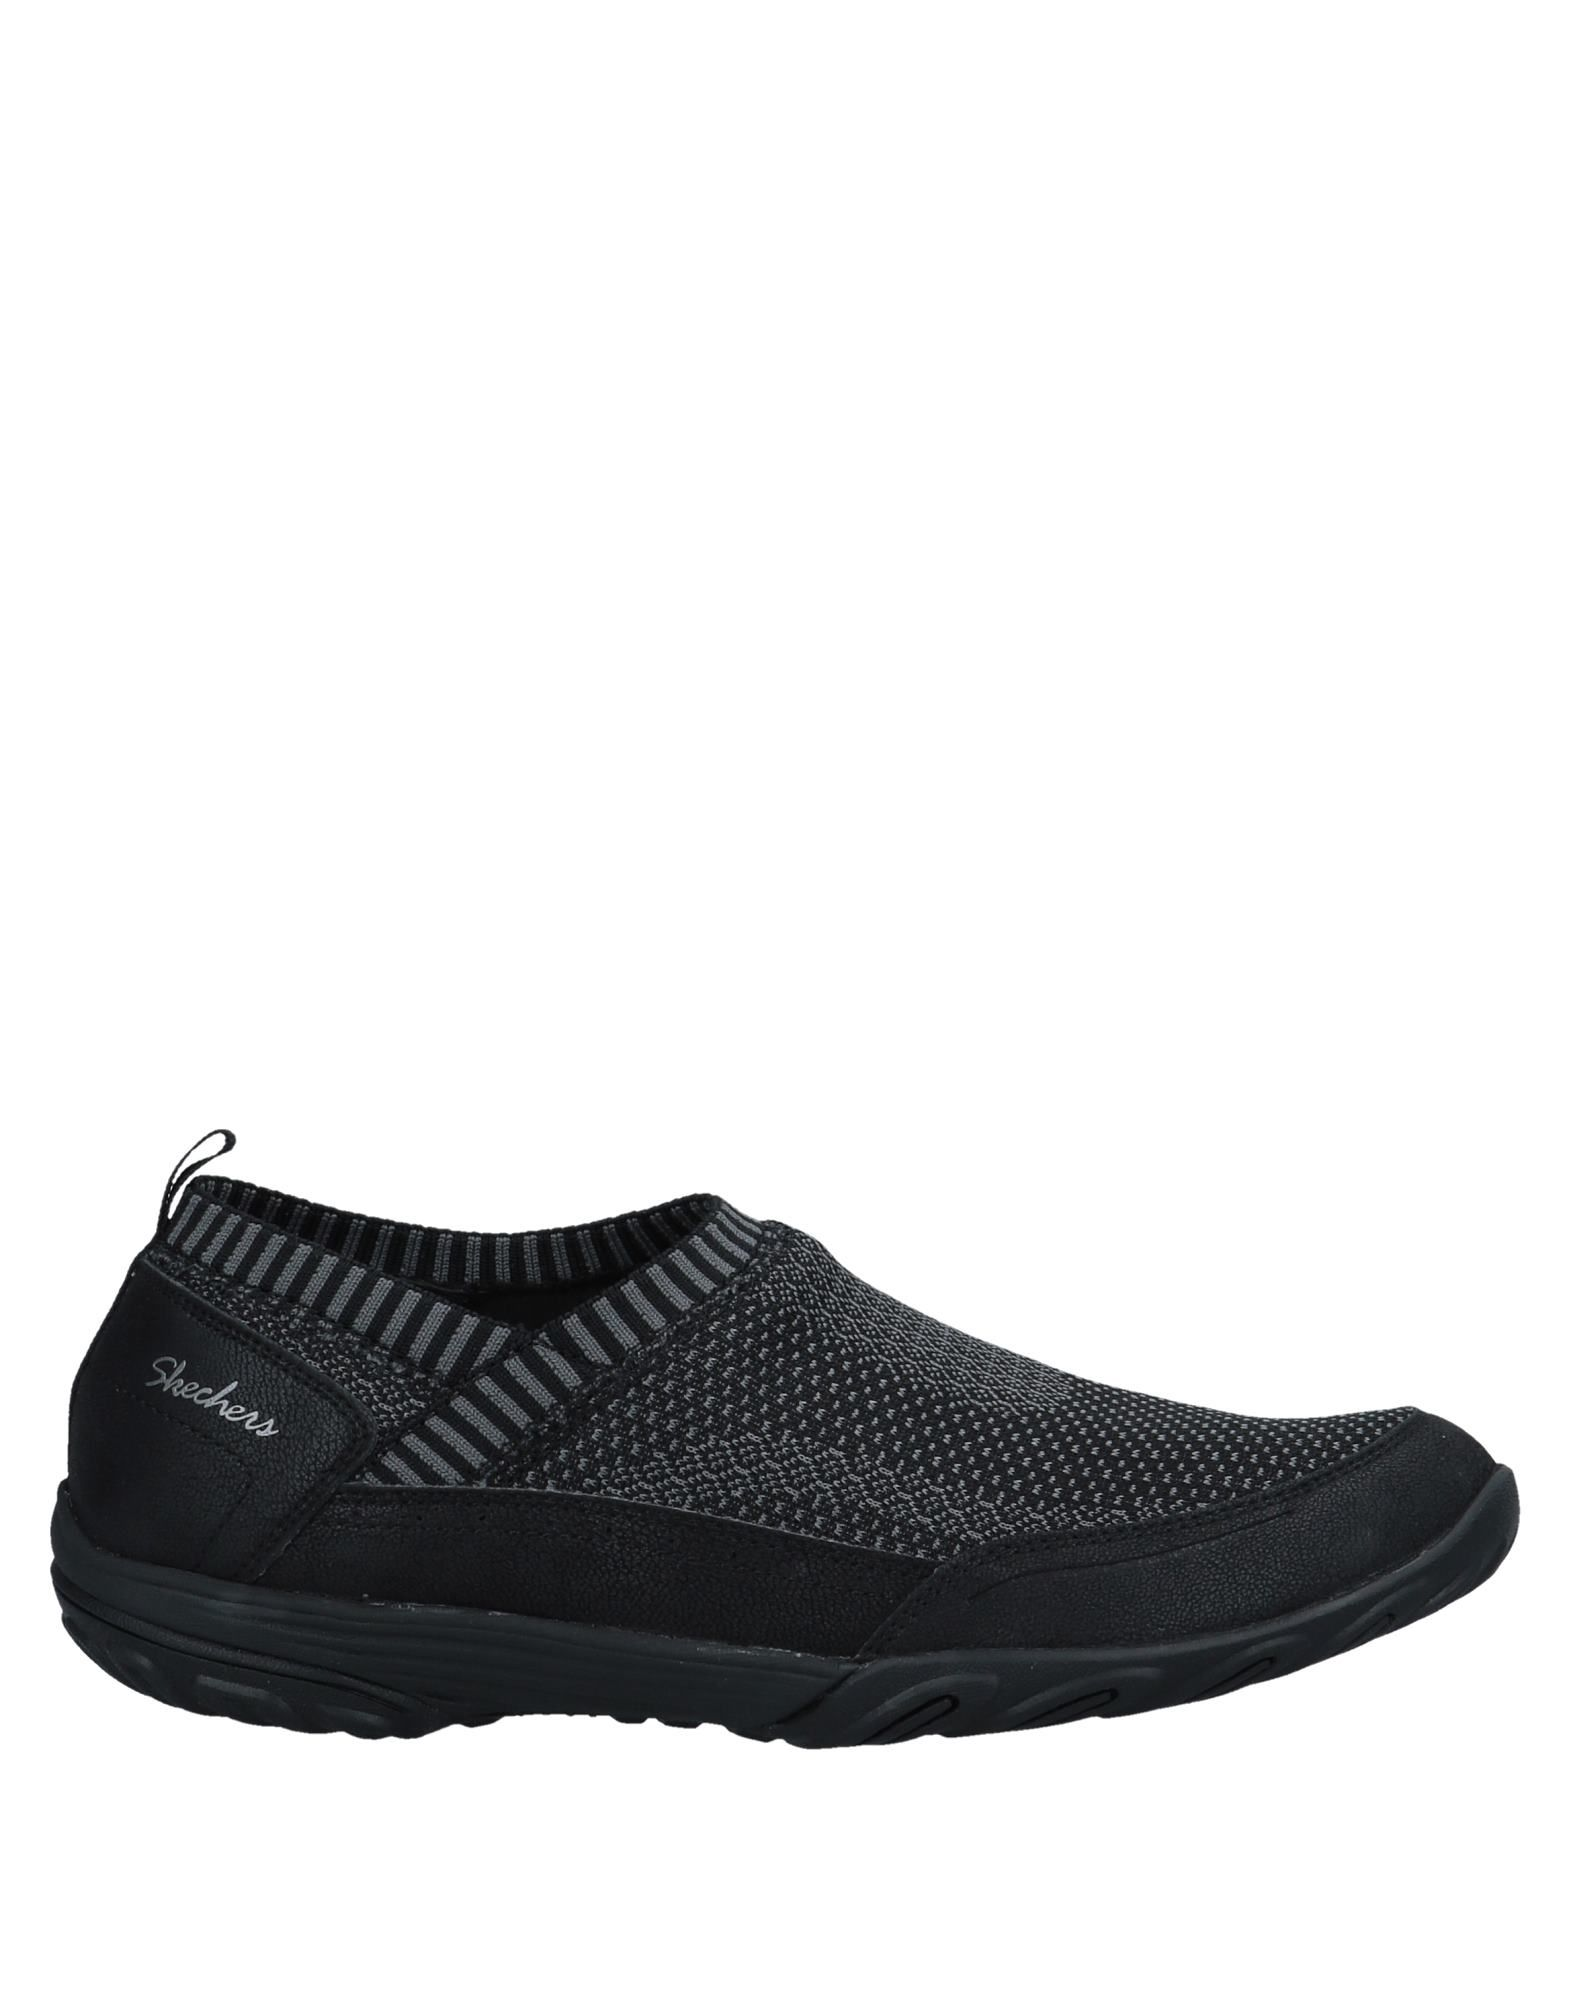 Skechers Sneakers - Women Skechers Sneakers online on 11556711XM  United Kingdom - 11556711XM on a2188f